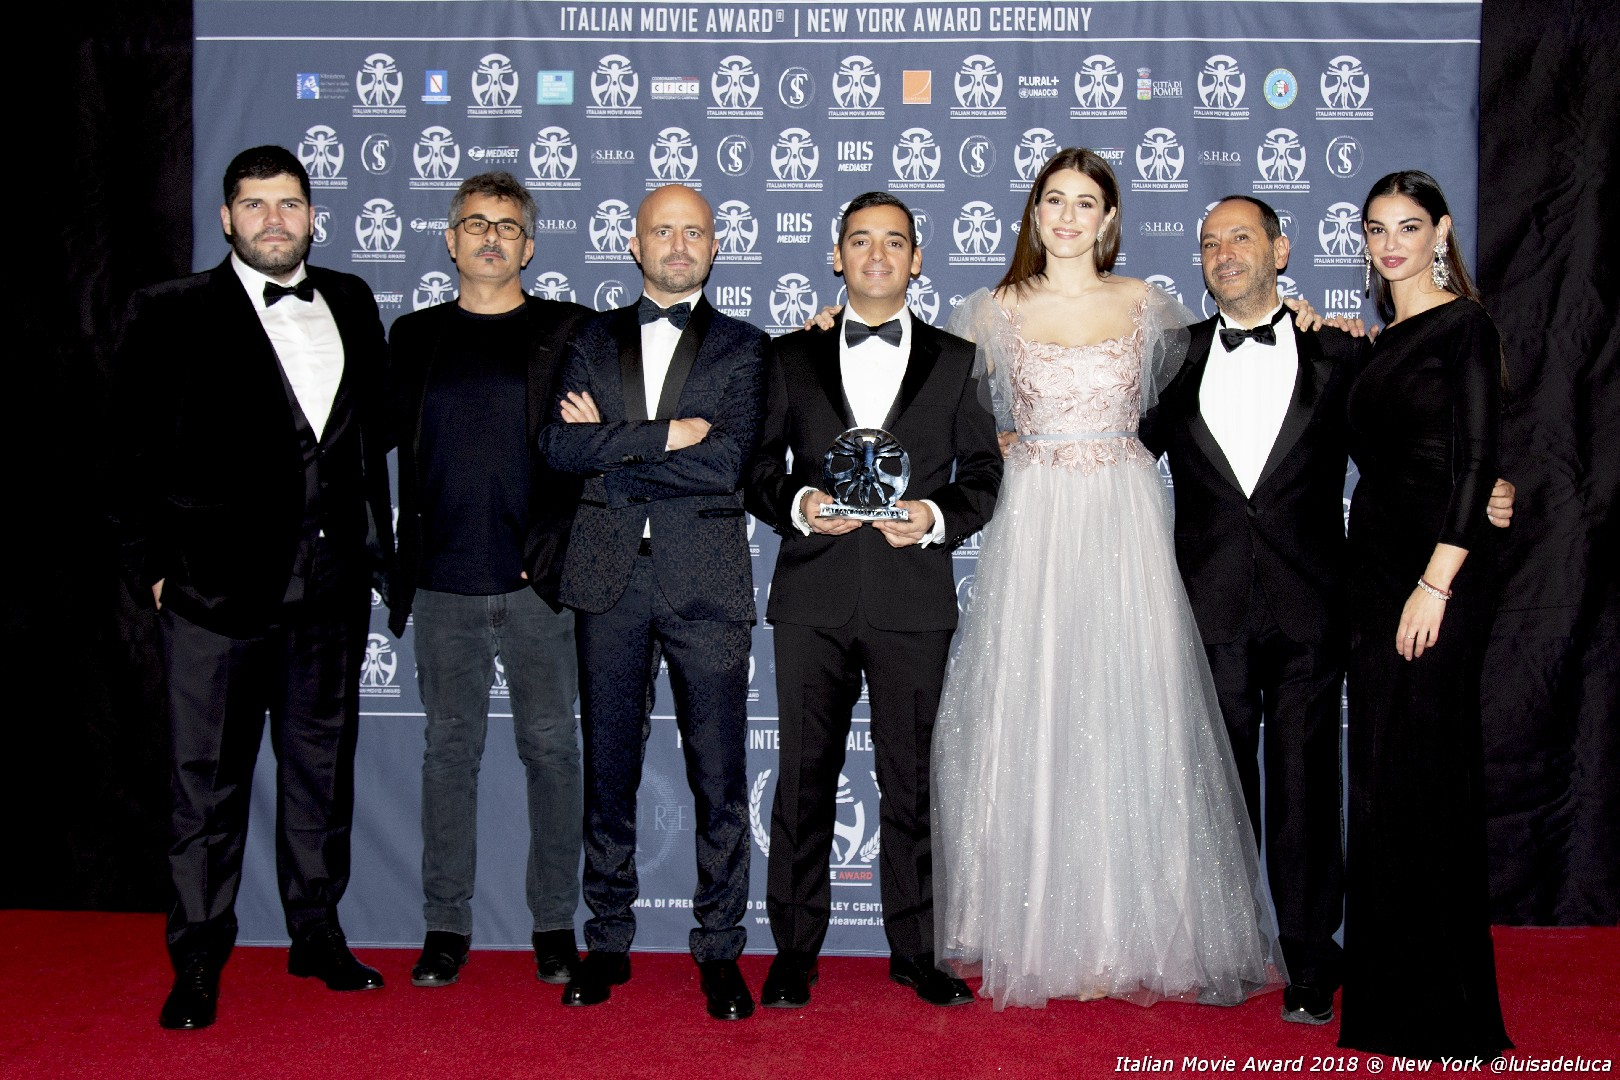 italian_movie_award_new_york_18